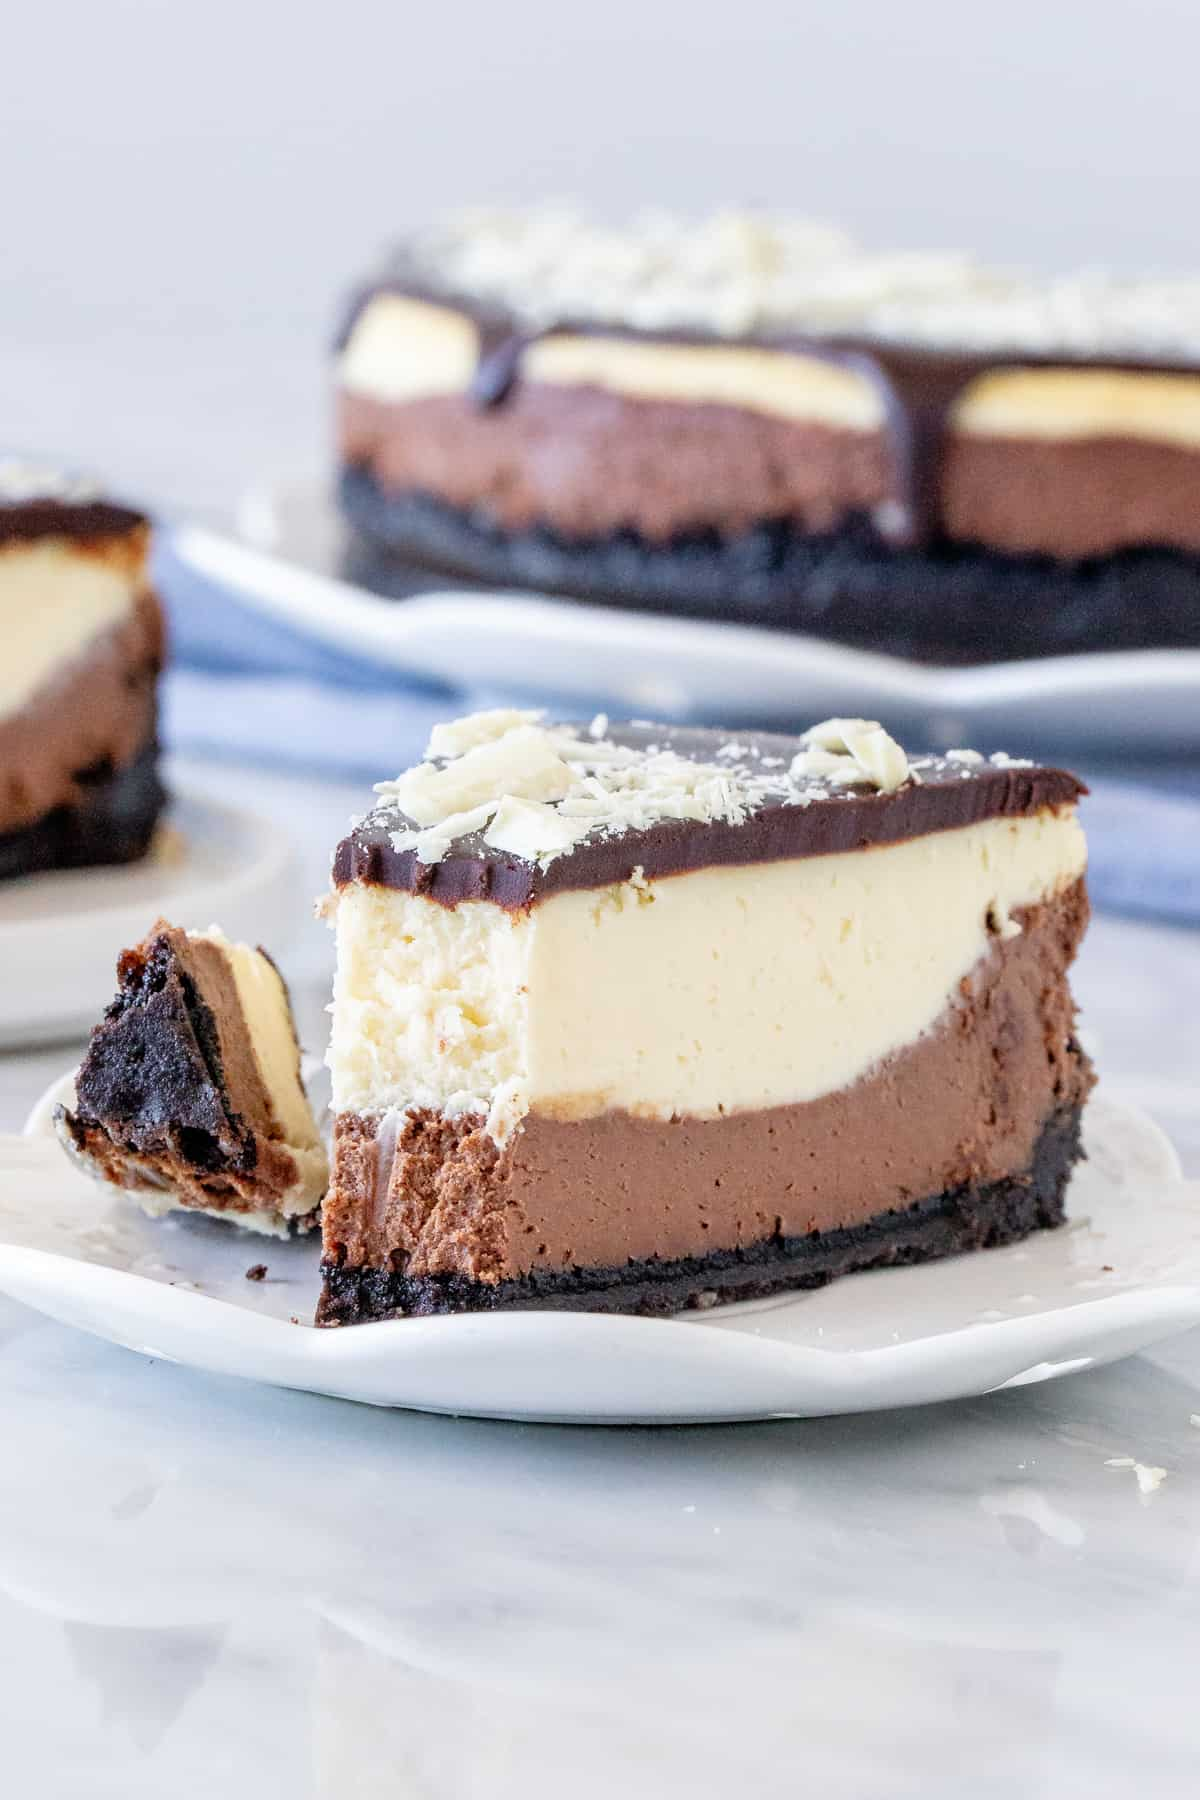 Slice of layered cheesecake with a bite.